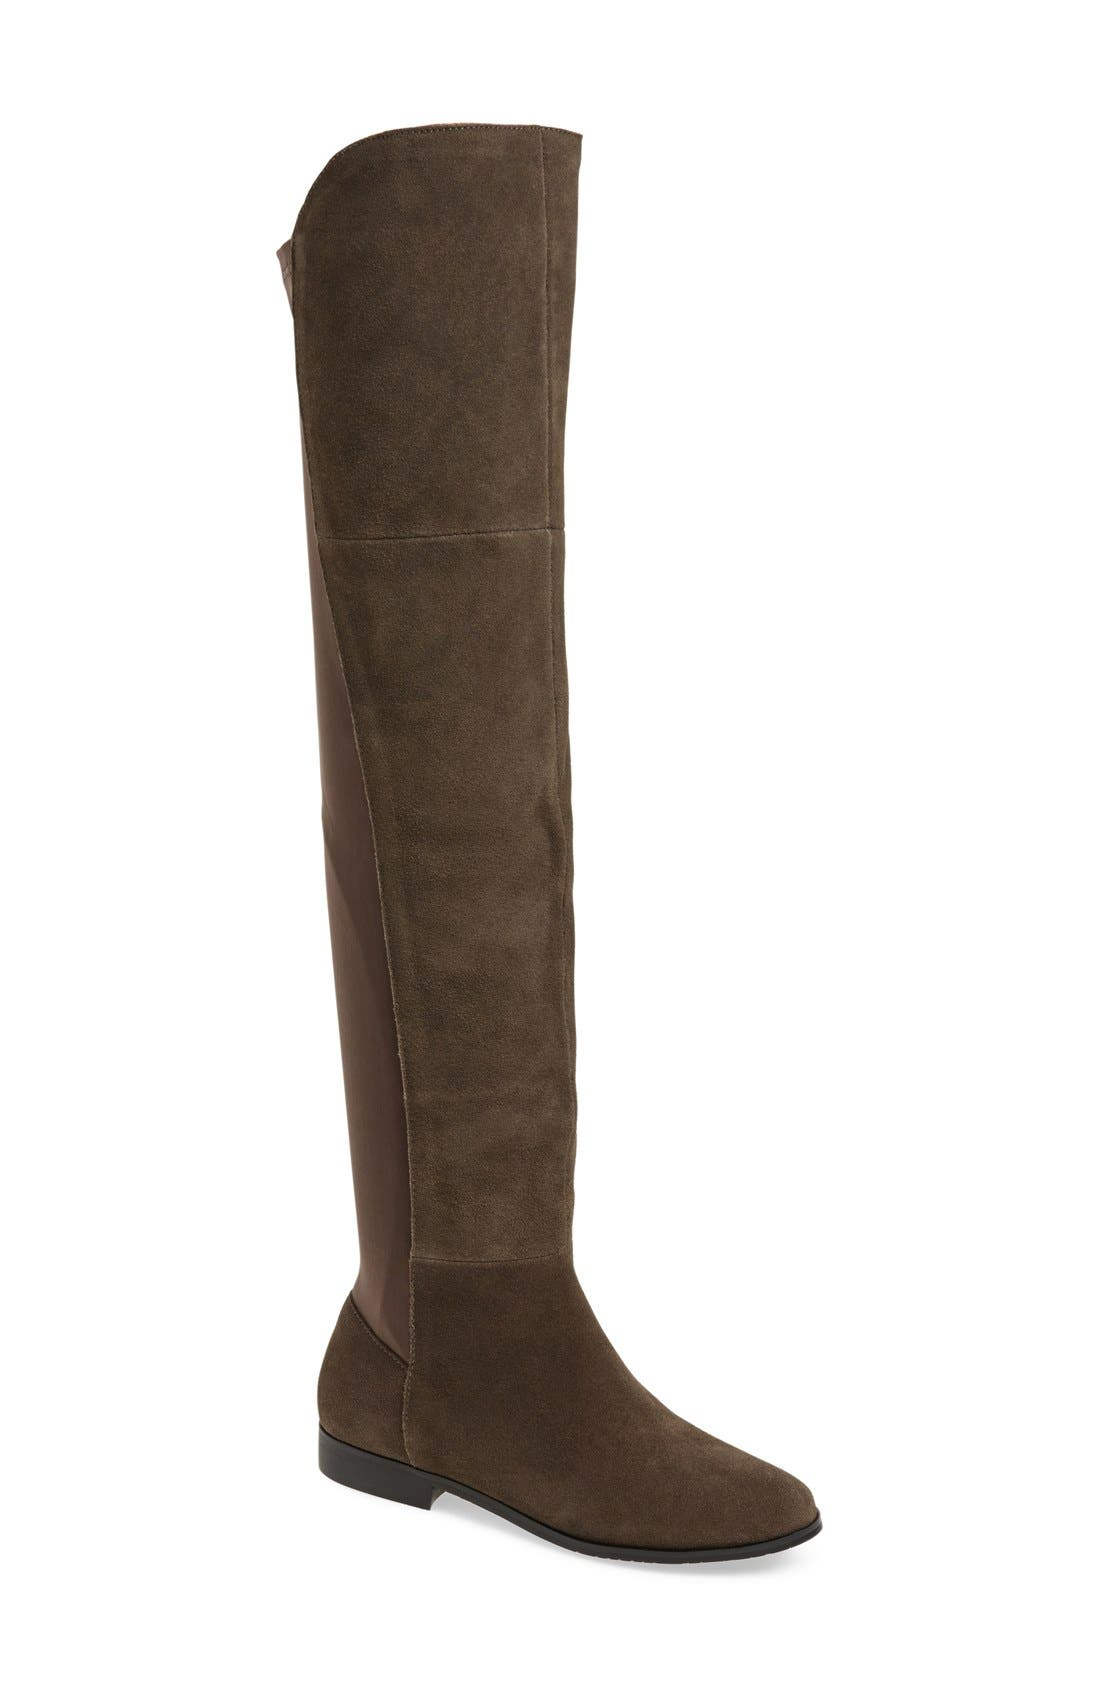 'Radiance' Over The Knee Boot,                             Main thumbnail 1, color,                             031